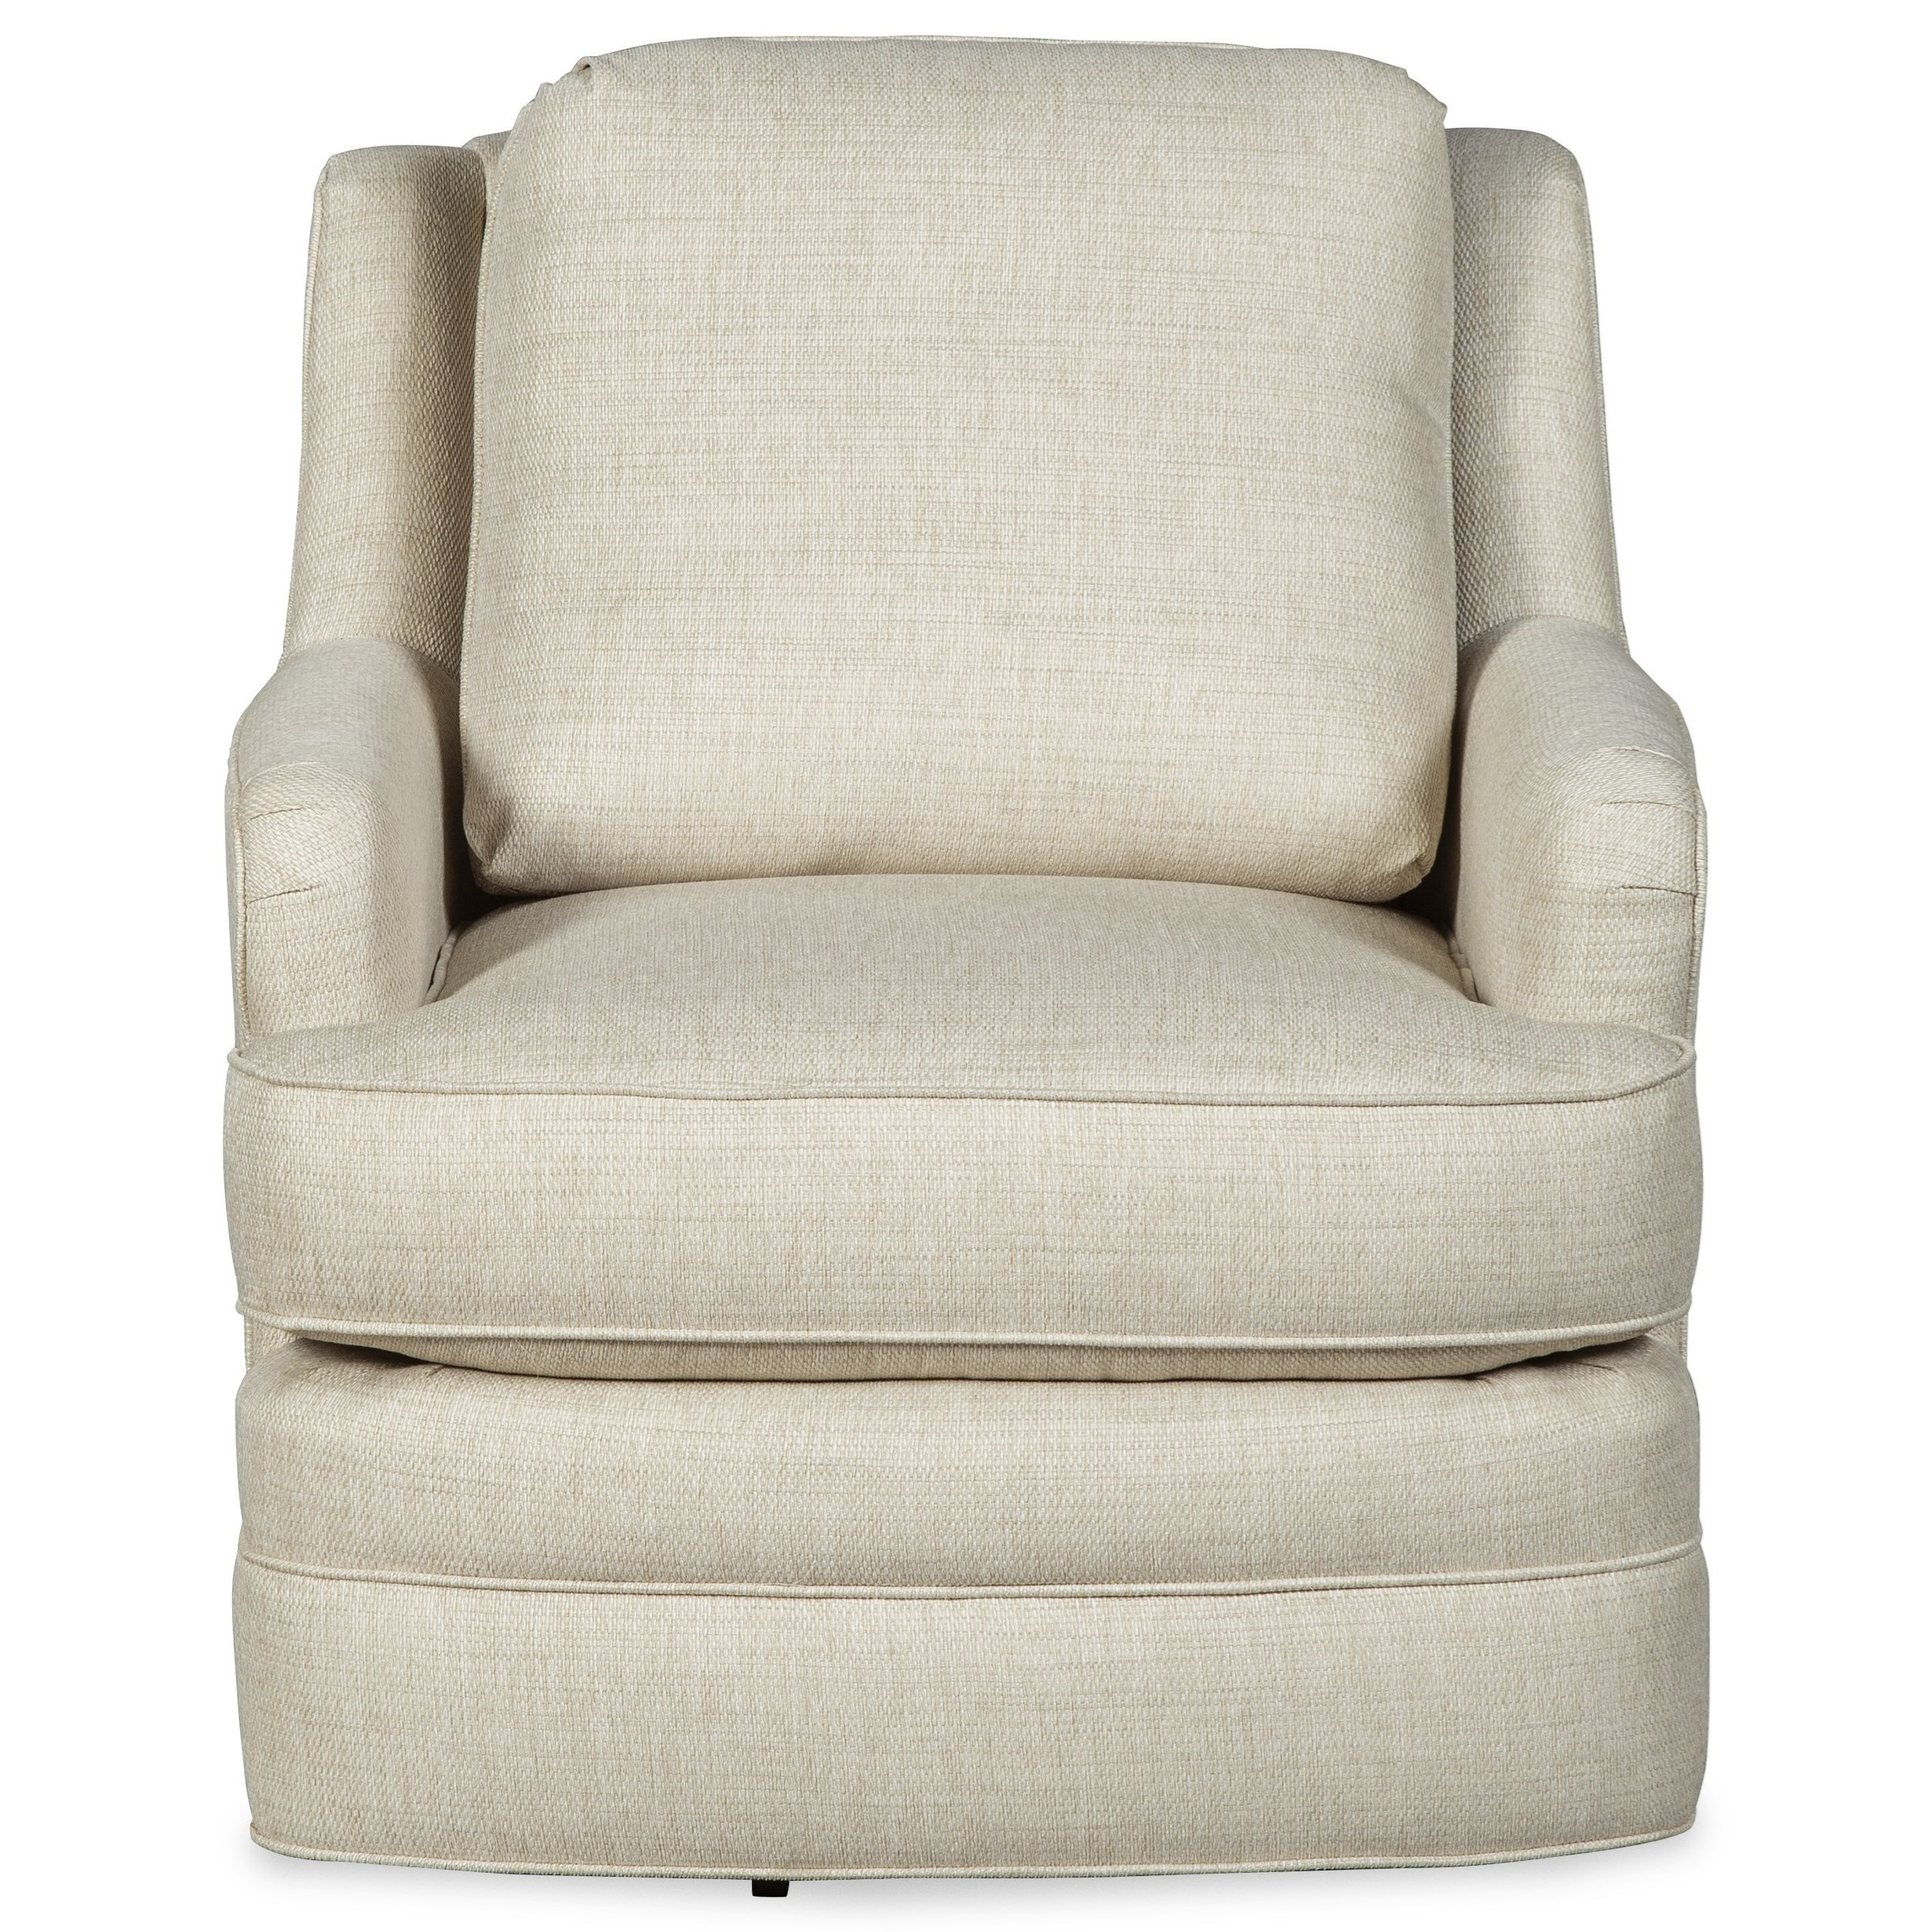 005510 Swivel Glider by Craftmaster at Home Collections Furniture